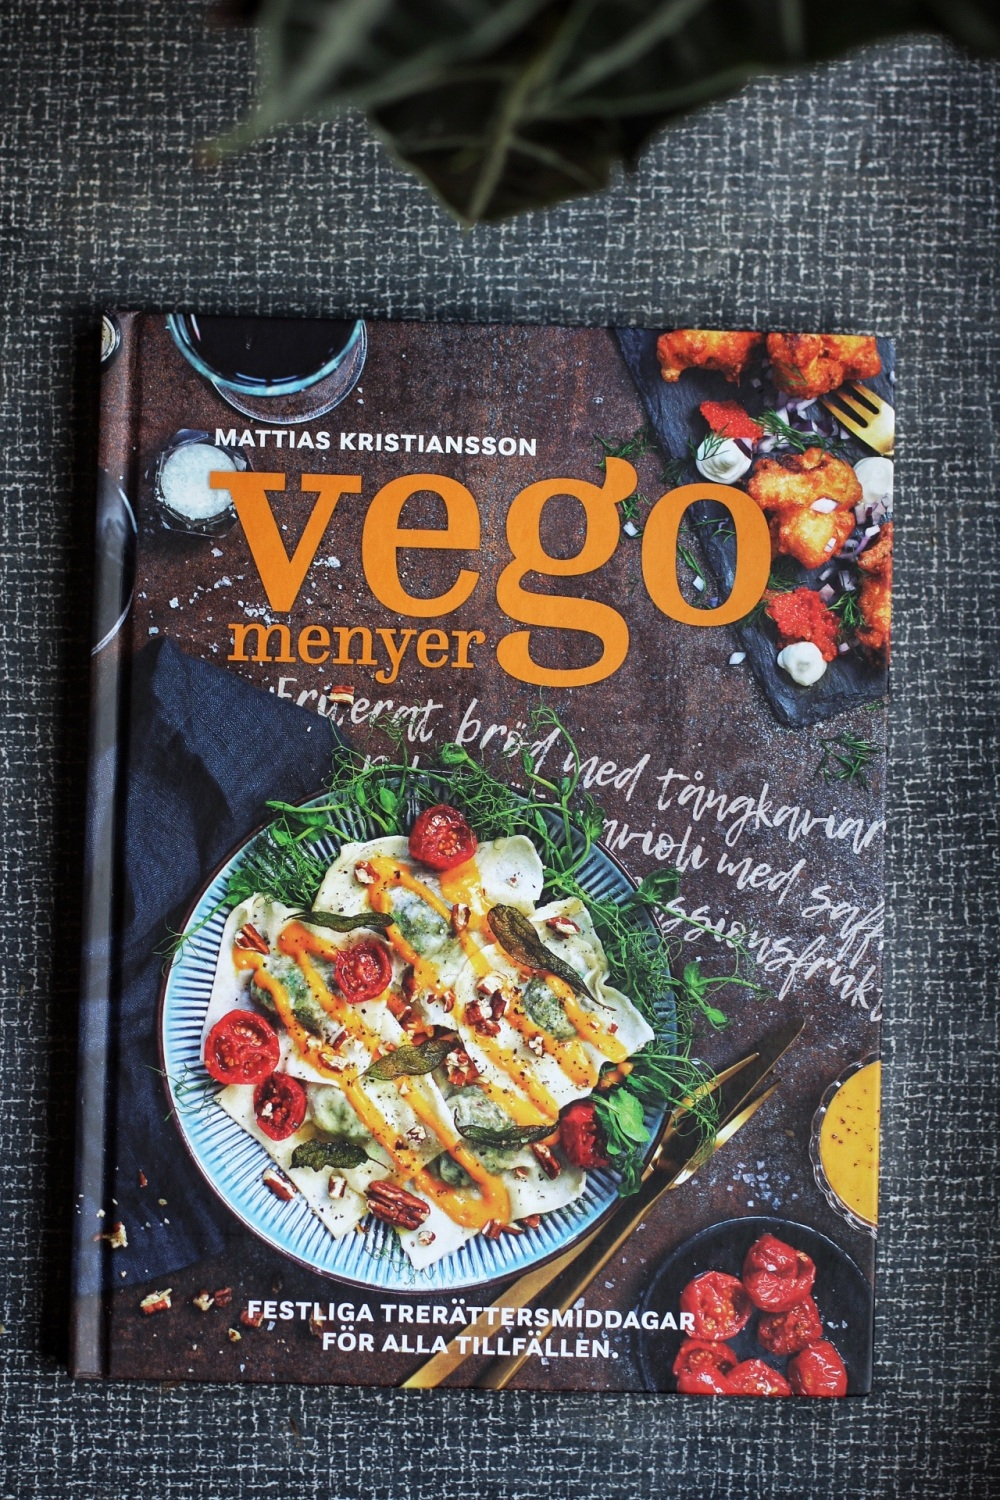 mattias Kristiansson vegomenyer vegetarisk kokbok recension